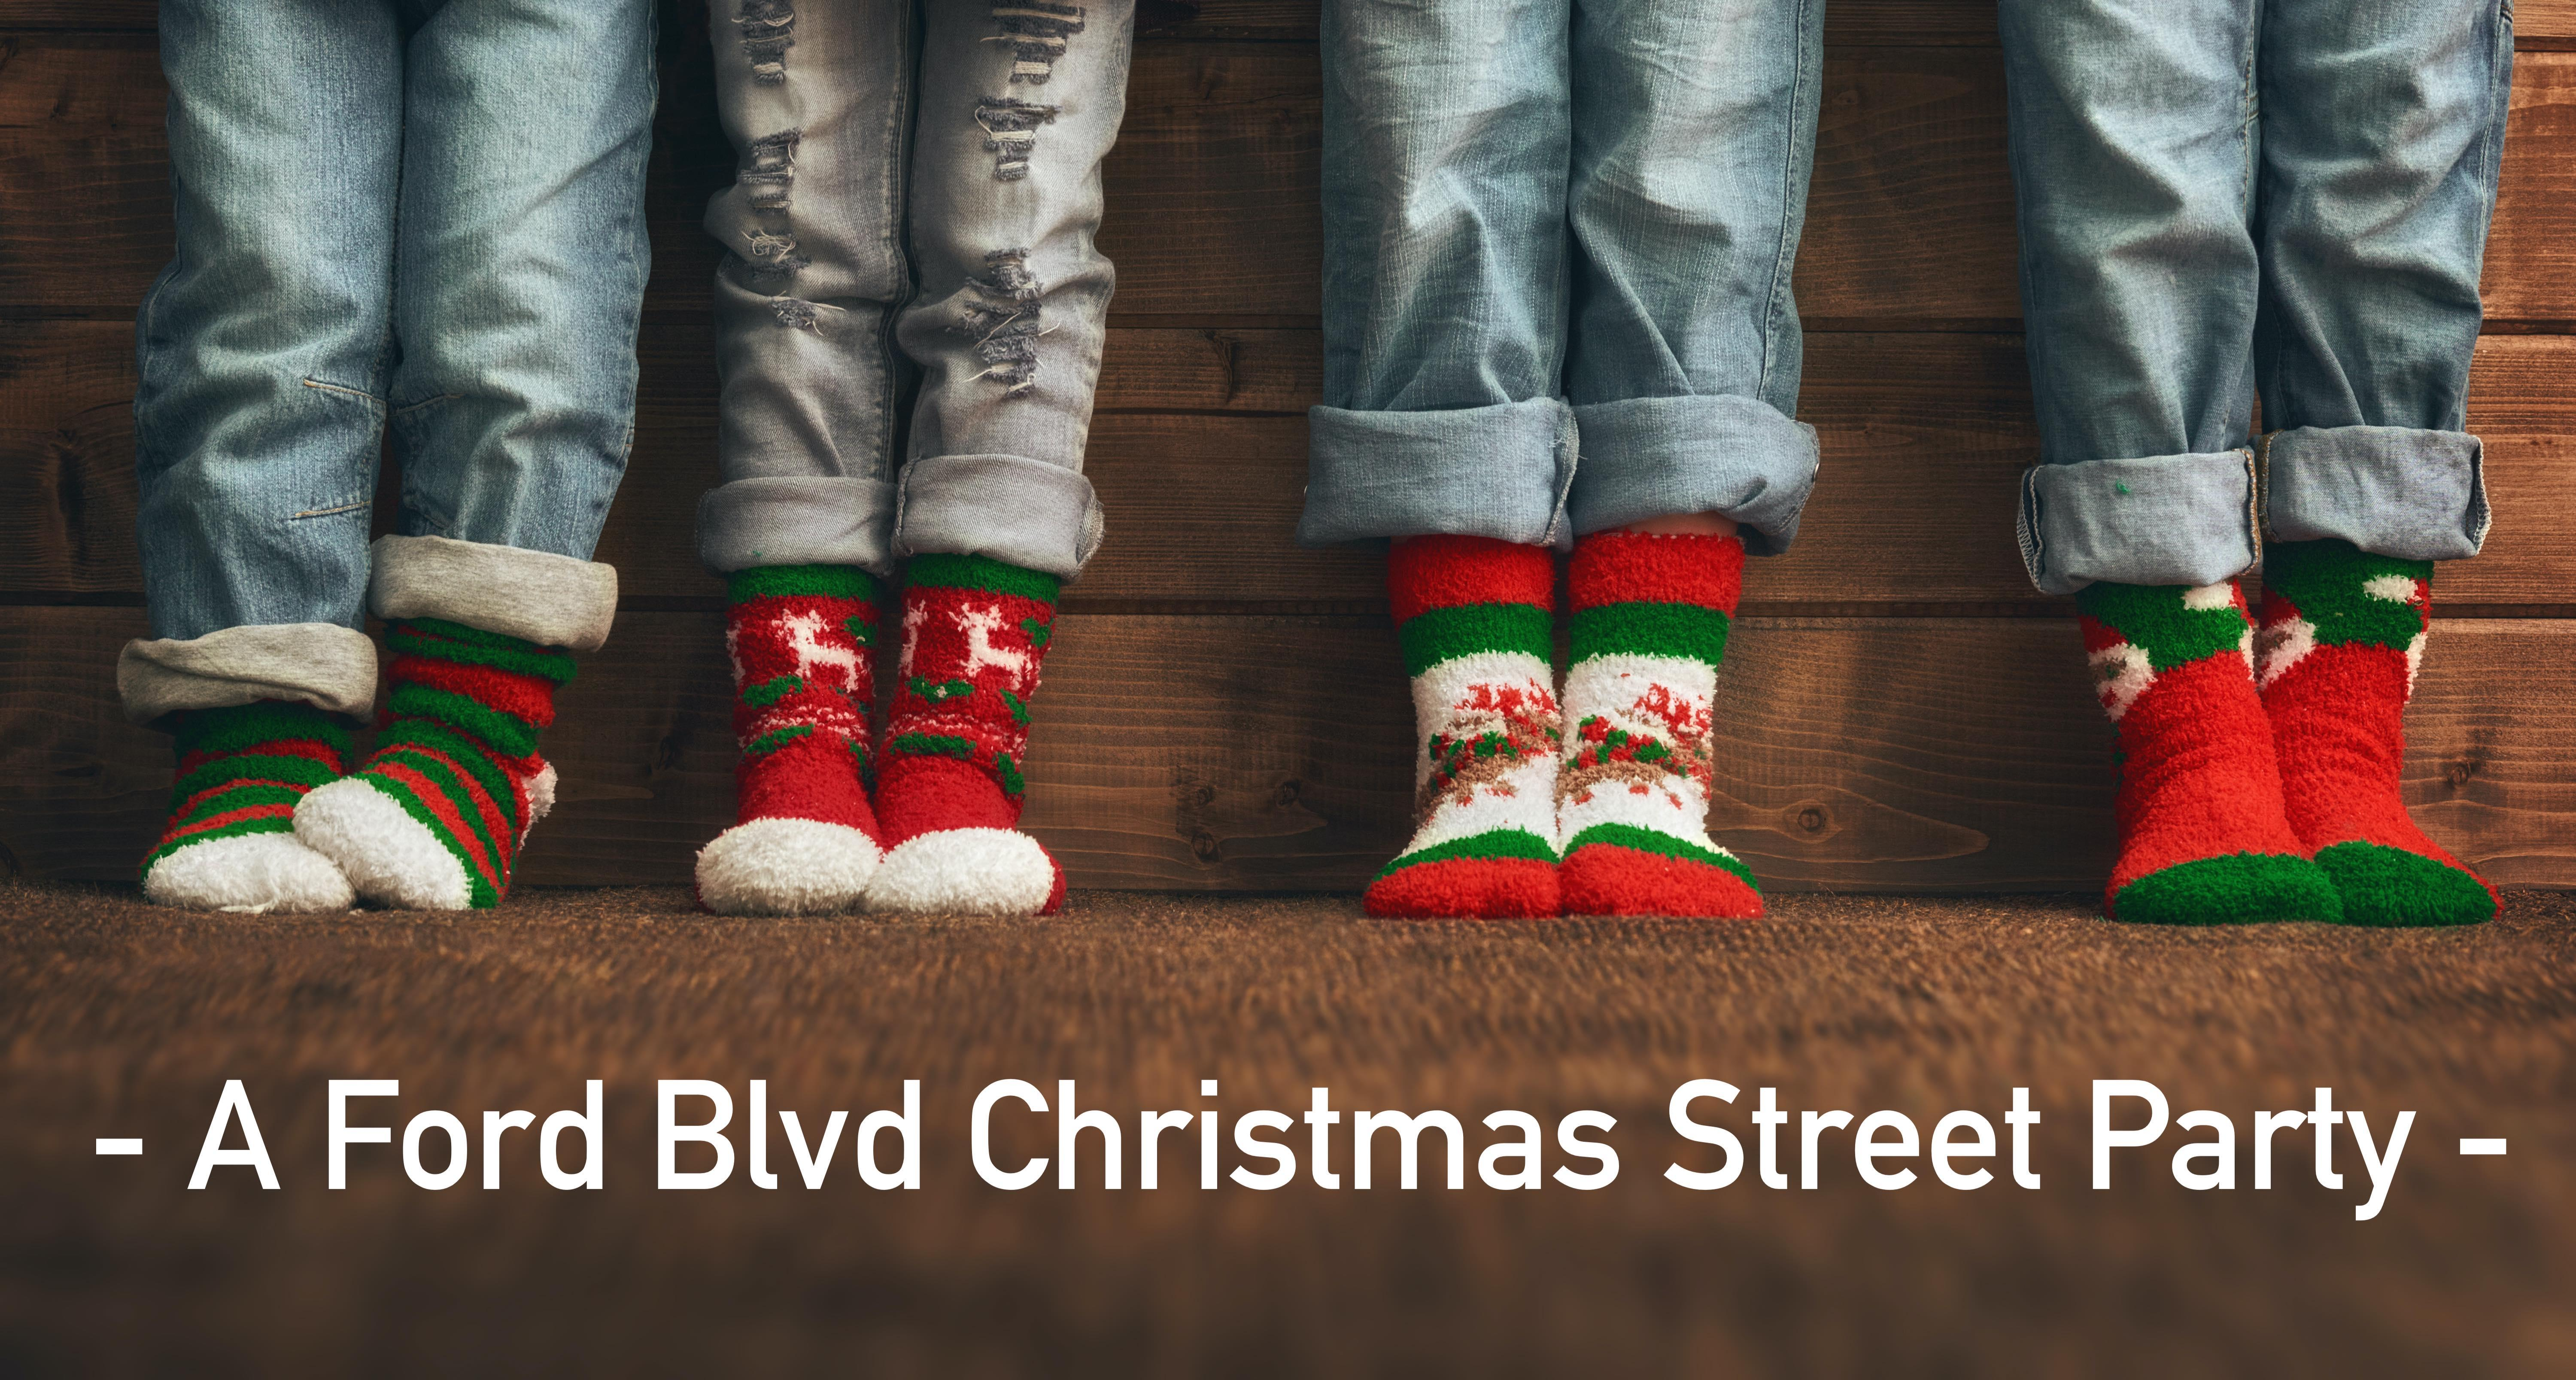 Baby it's cold outside - A Ford Blvd Christmas Sock Party